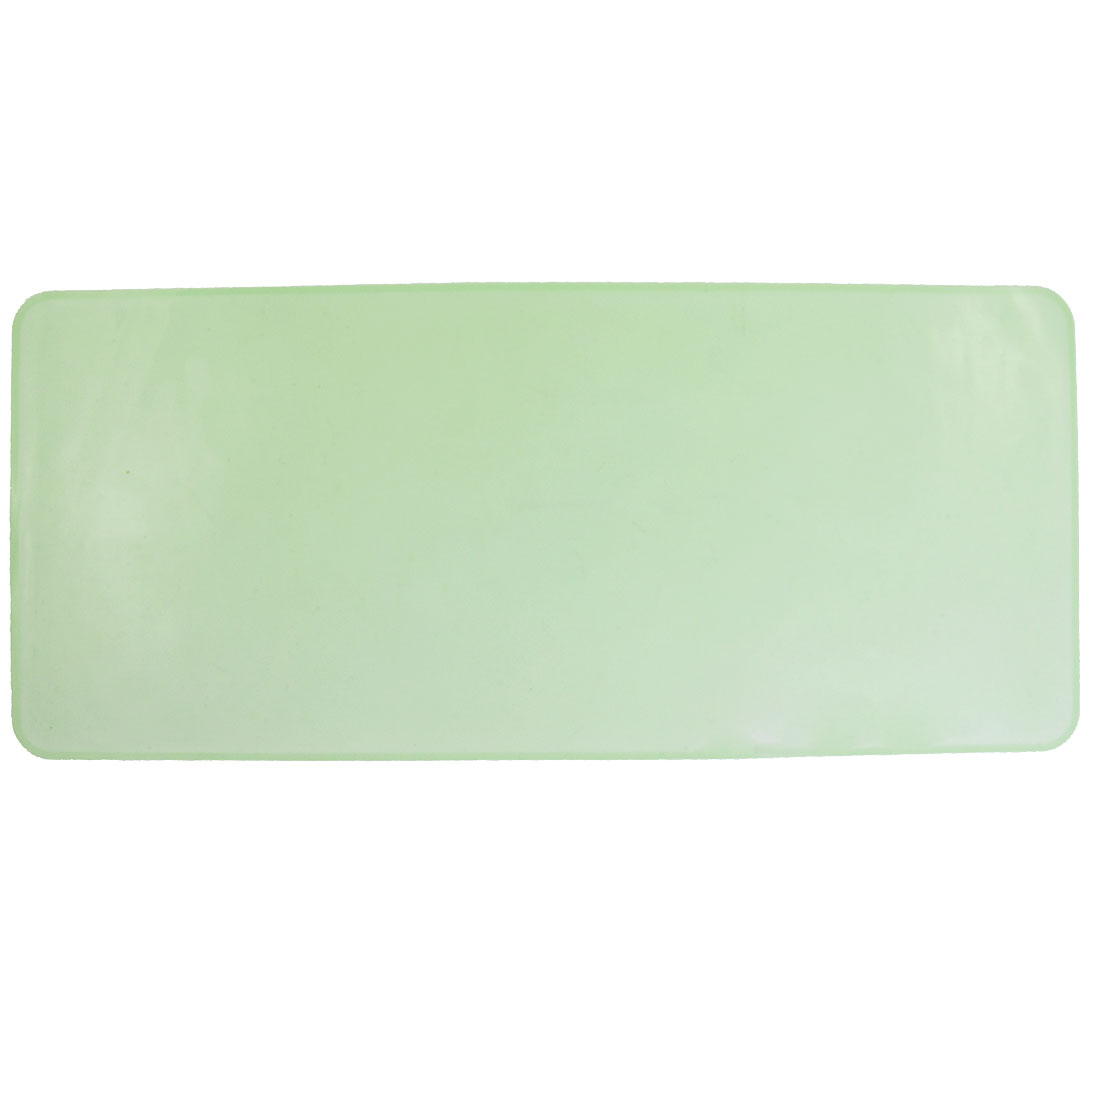 "Clear Green Silicone Skin Keyboard Protector Film for 13.3"" Widescreen Laptop"